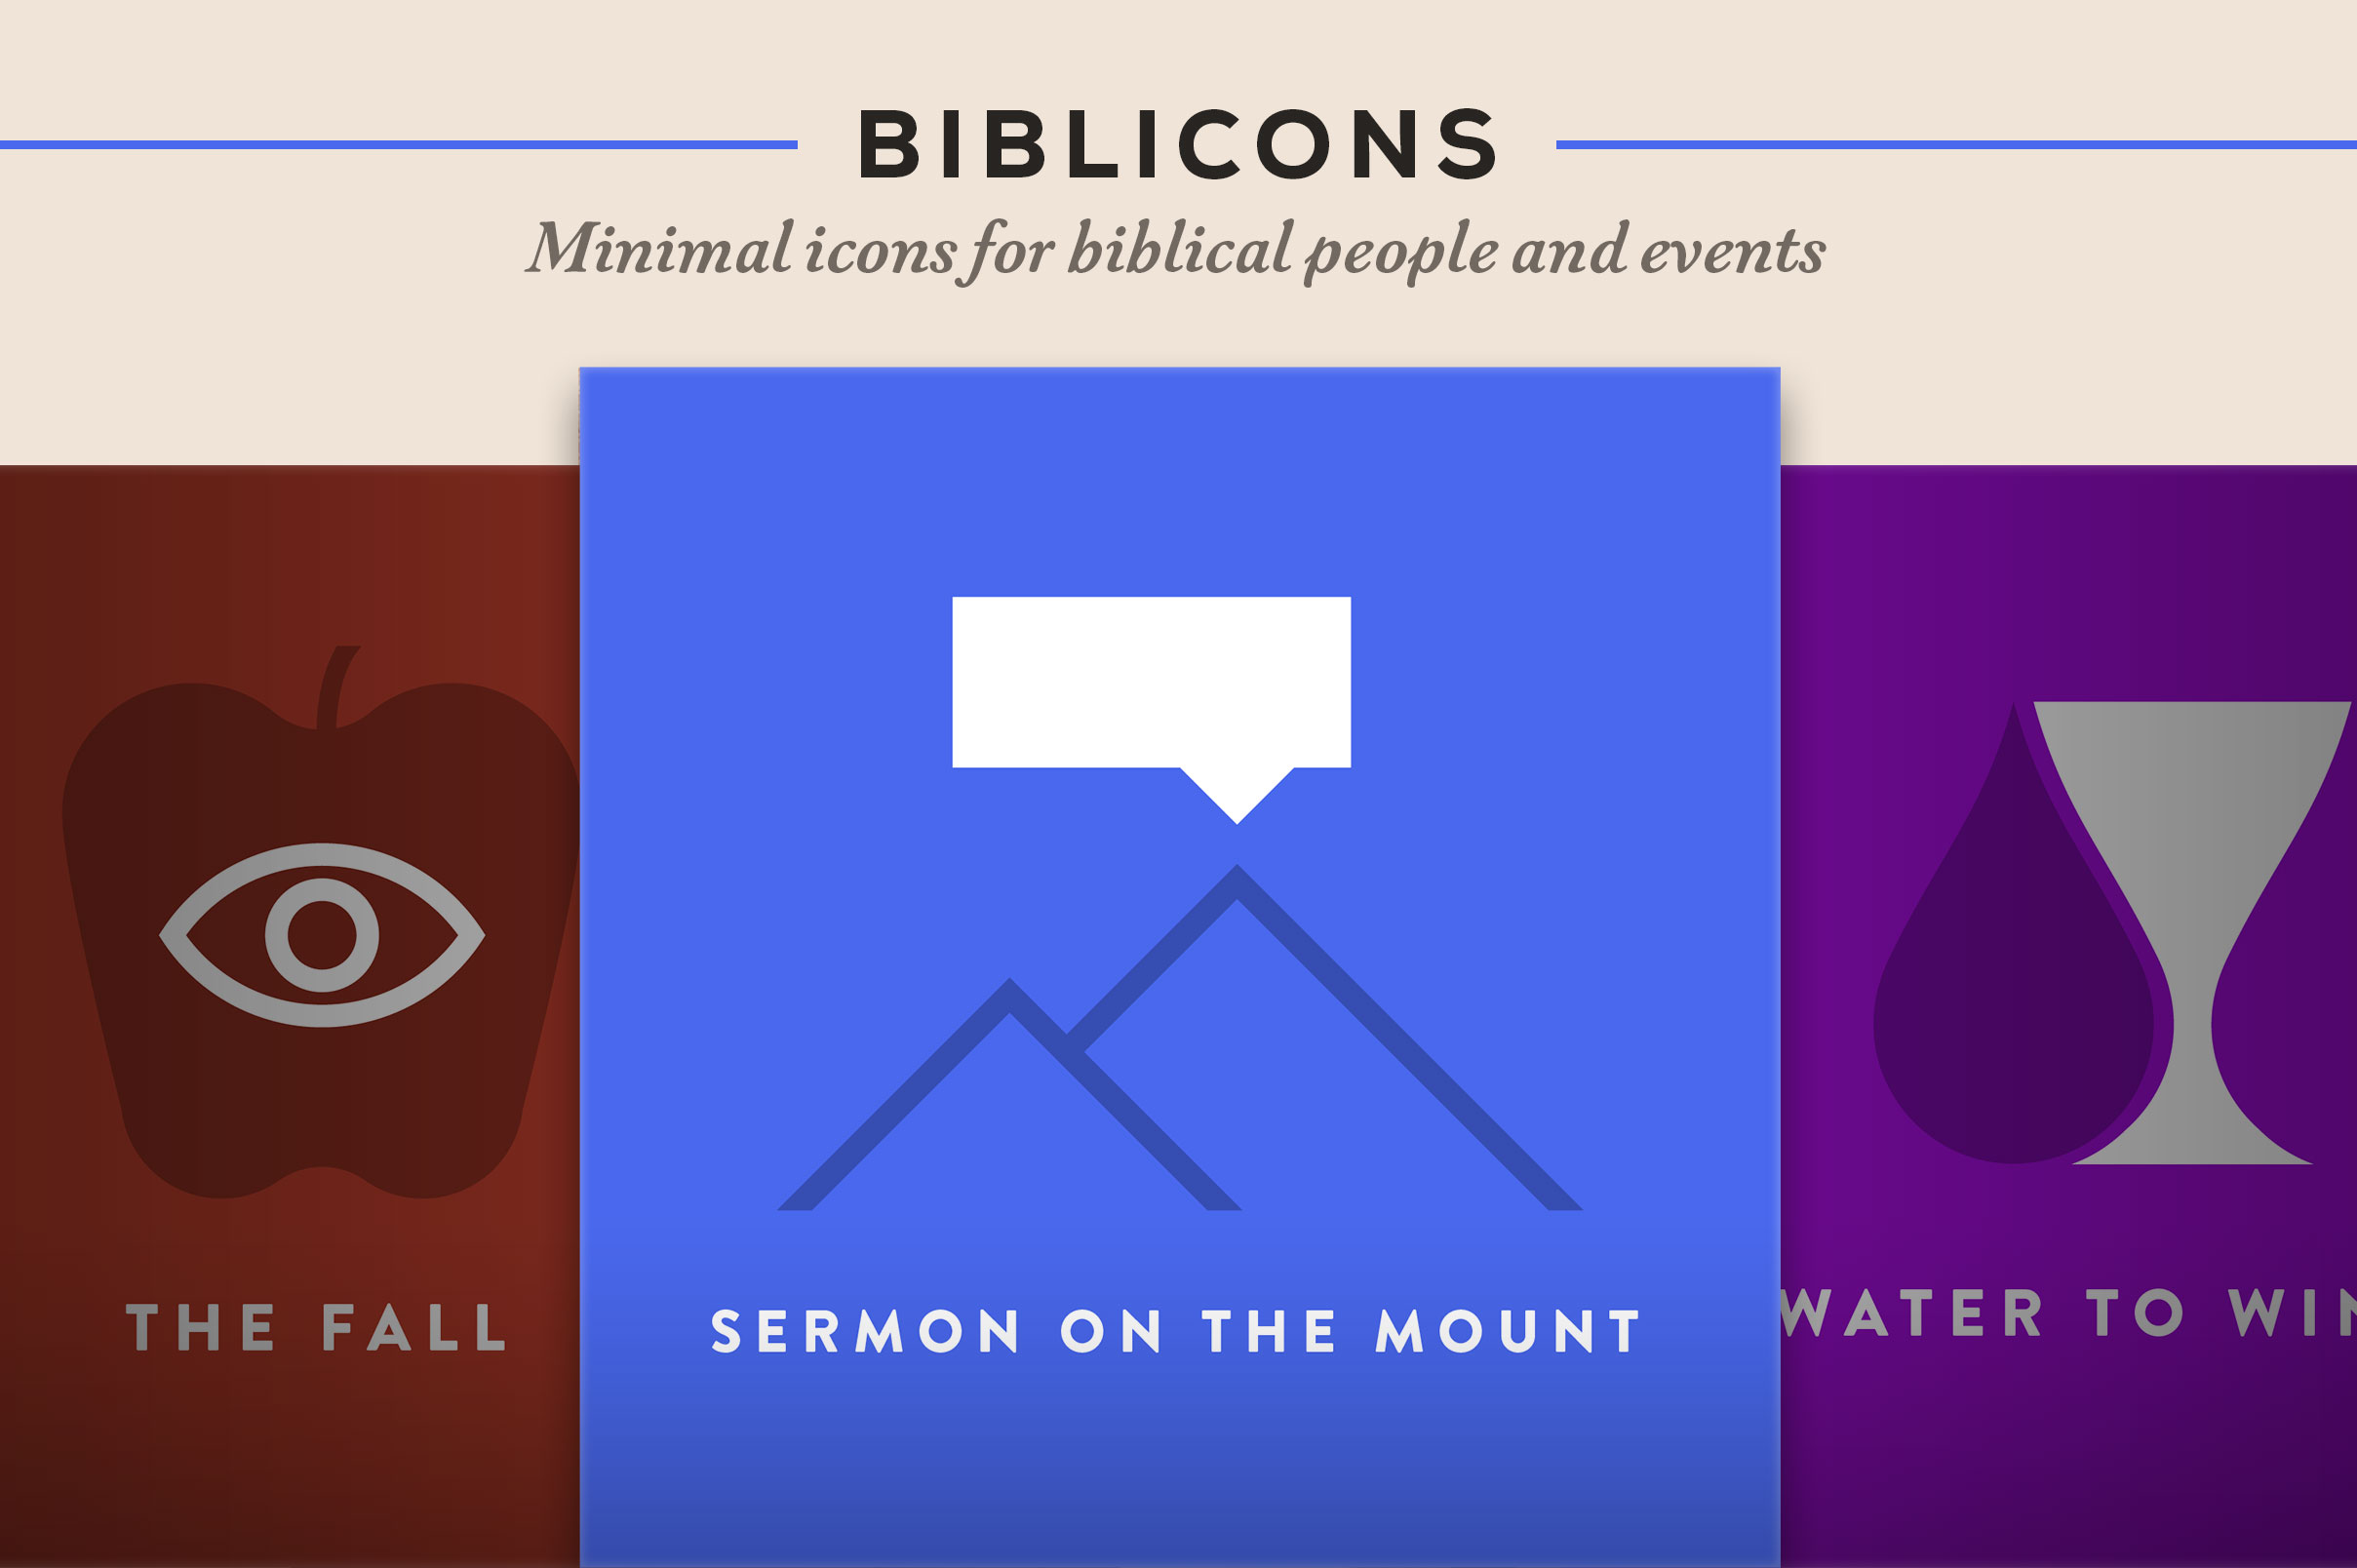 Minimal icons for biblical people and events